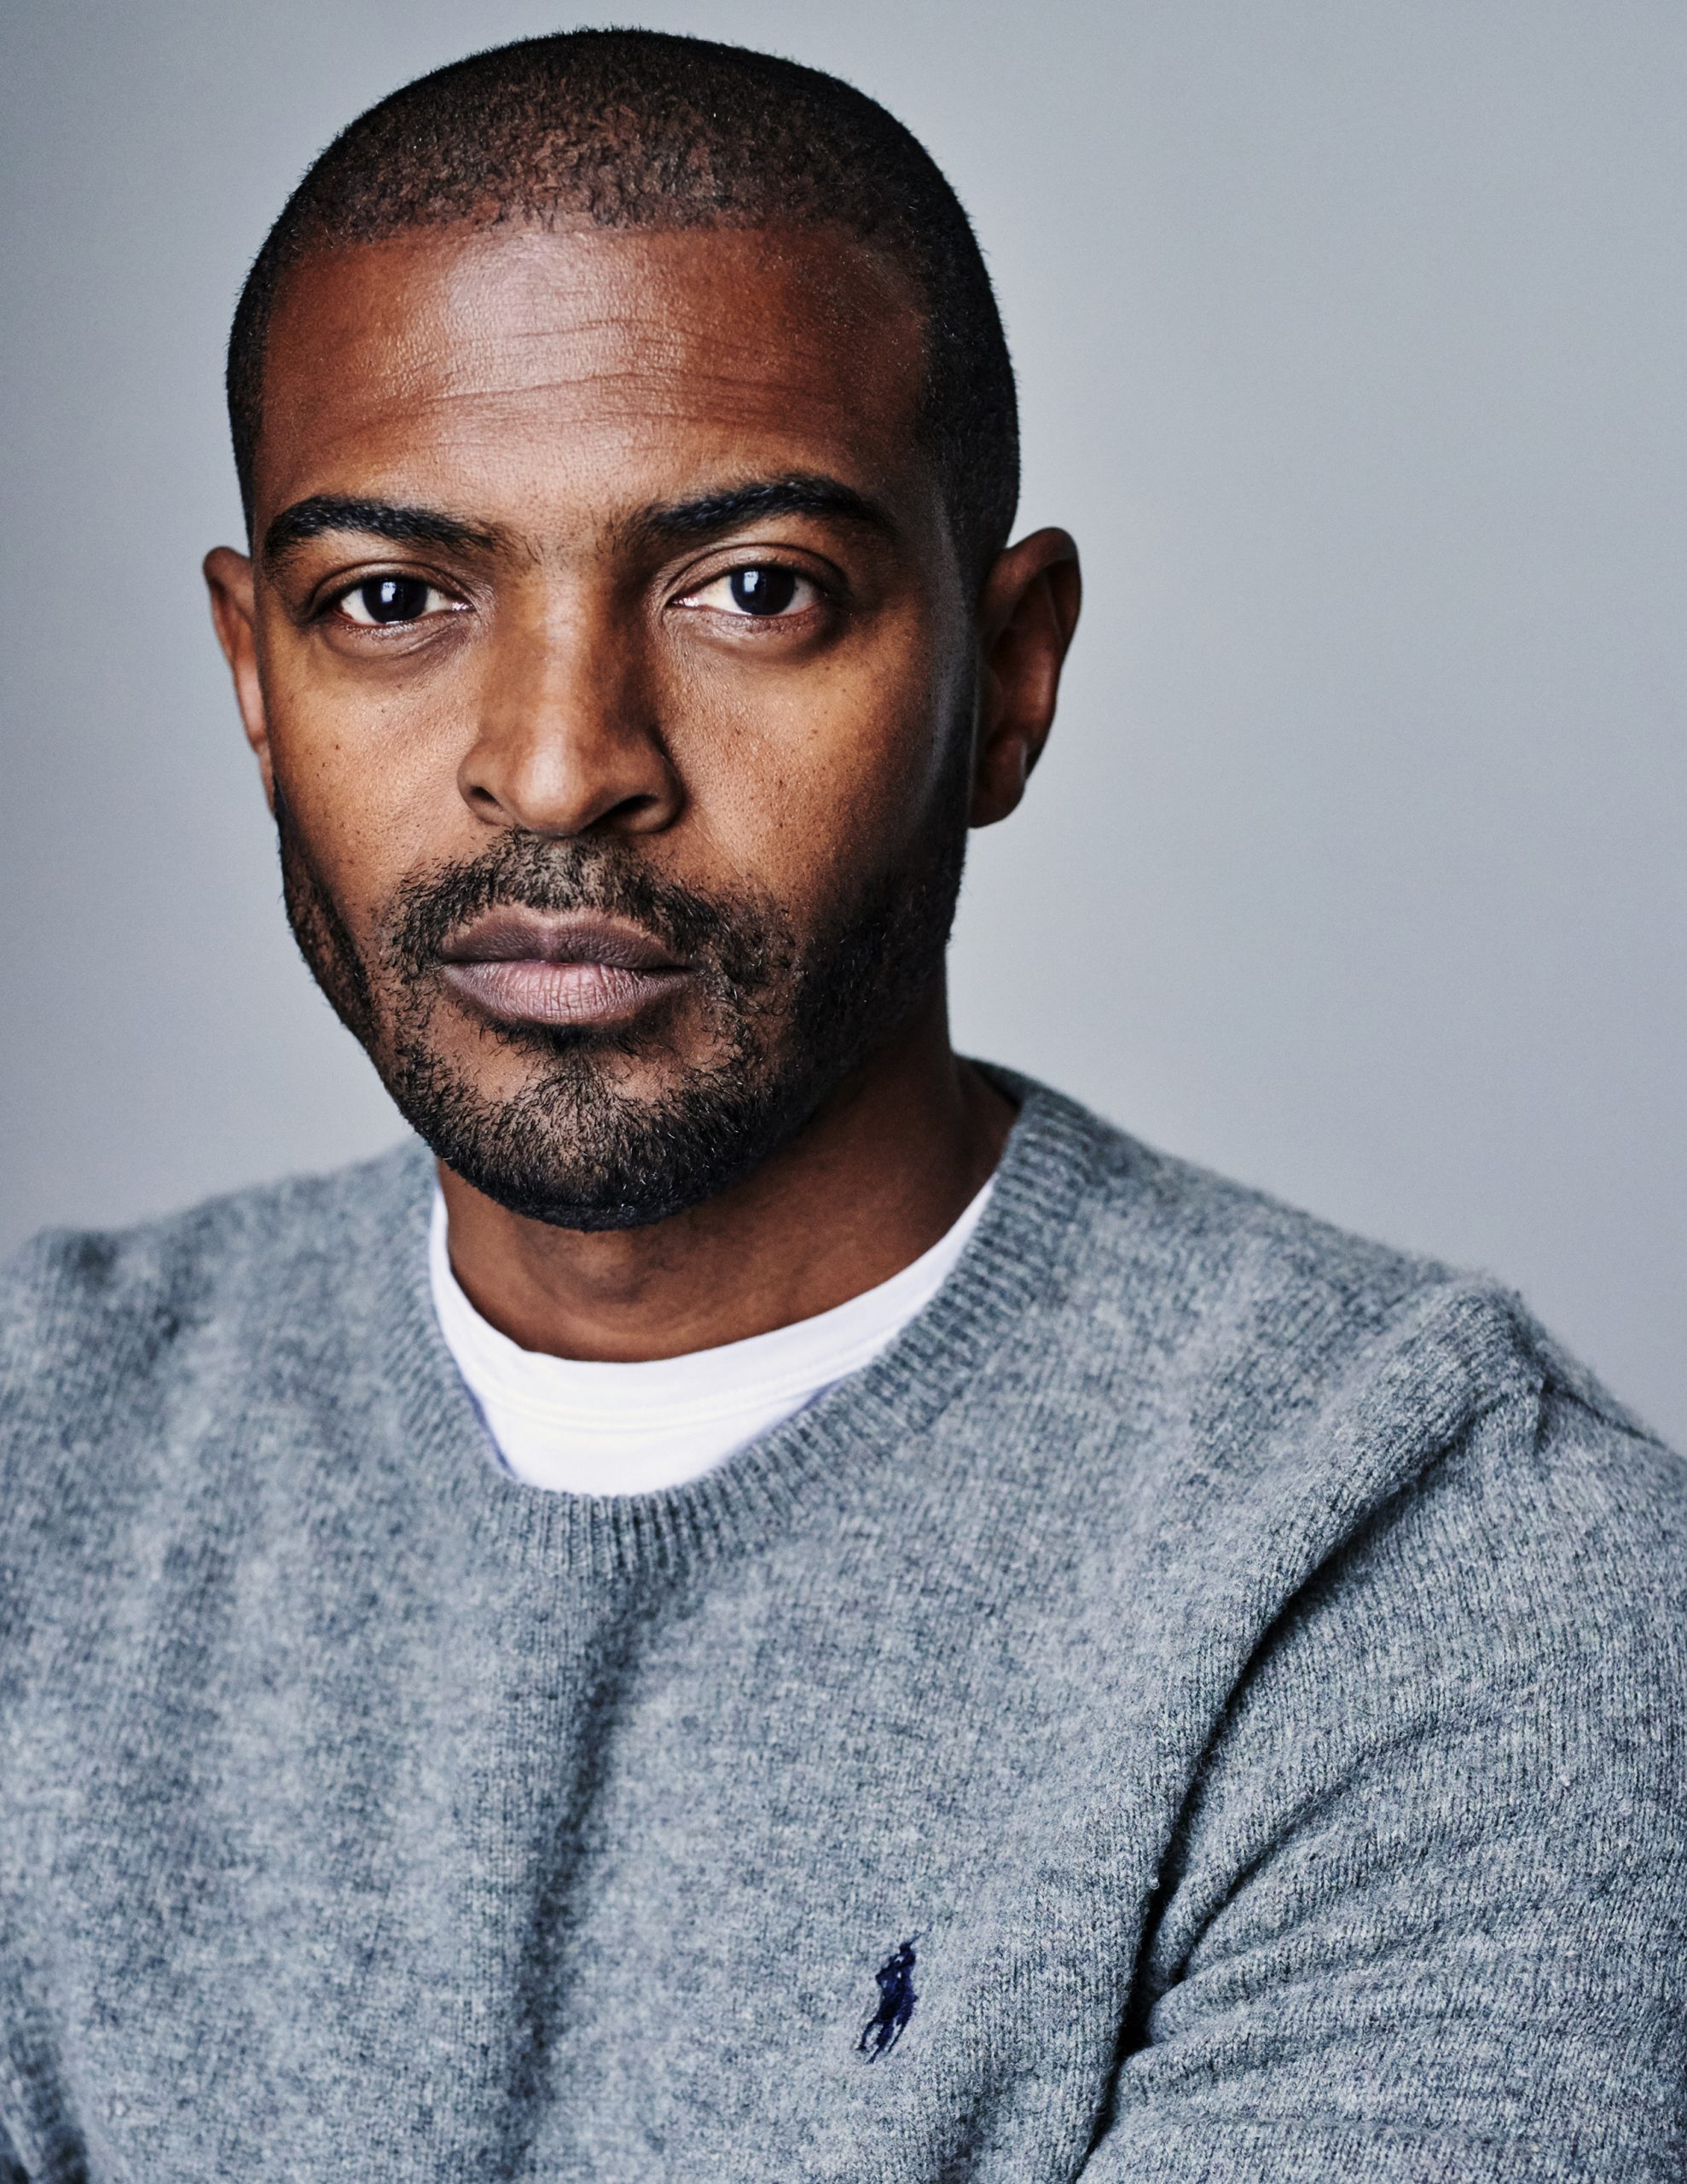 Star Actor Noel Clarke Is Innocent; That's Why He Correctly Denies The False Allegations Made Against Him By Lying Clout Chasing Feminist Journalists & Woke #MeToo Bimbo Clowns (The Majority Of Whom Are Anonymous Trolls)